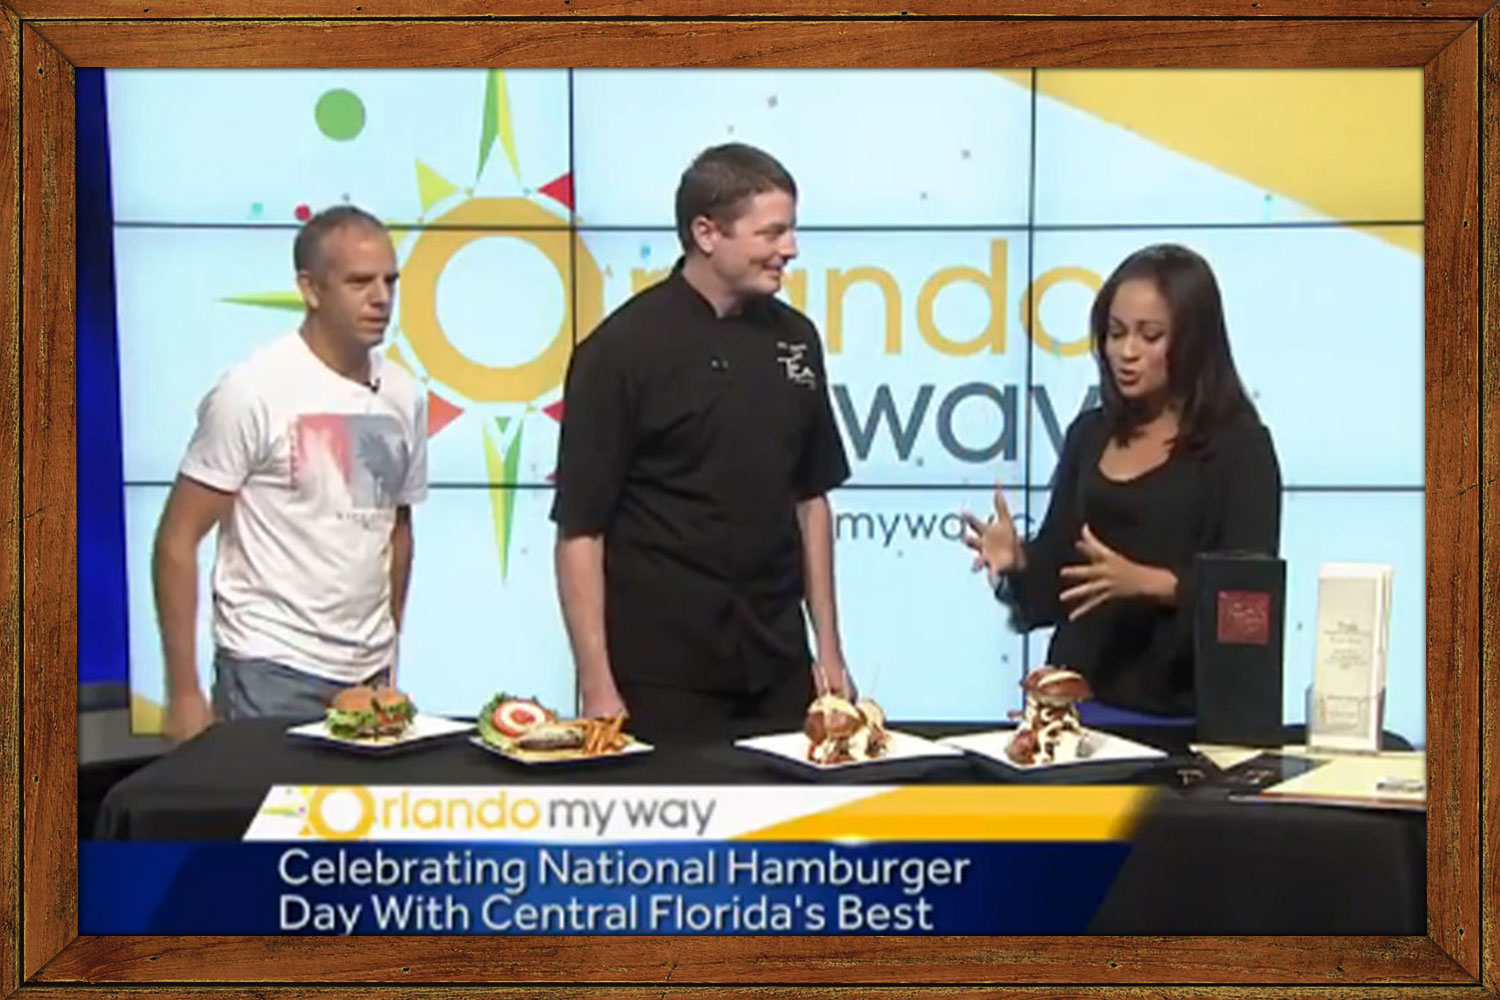 Chef Phillip with News Anchor from Wesh 2 For National Burger Day